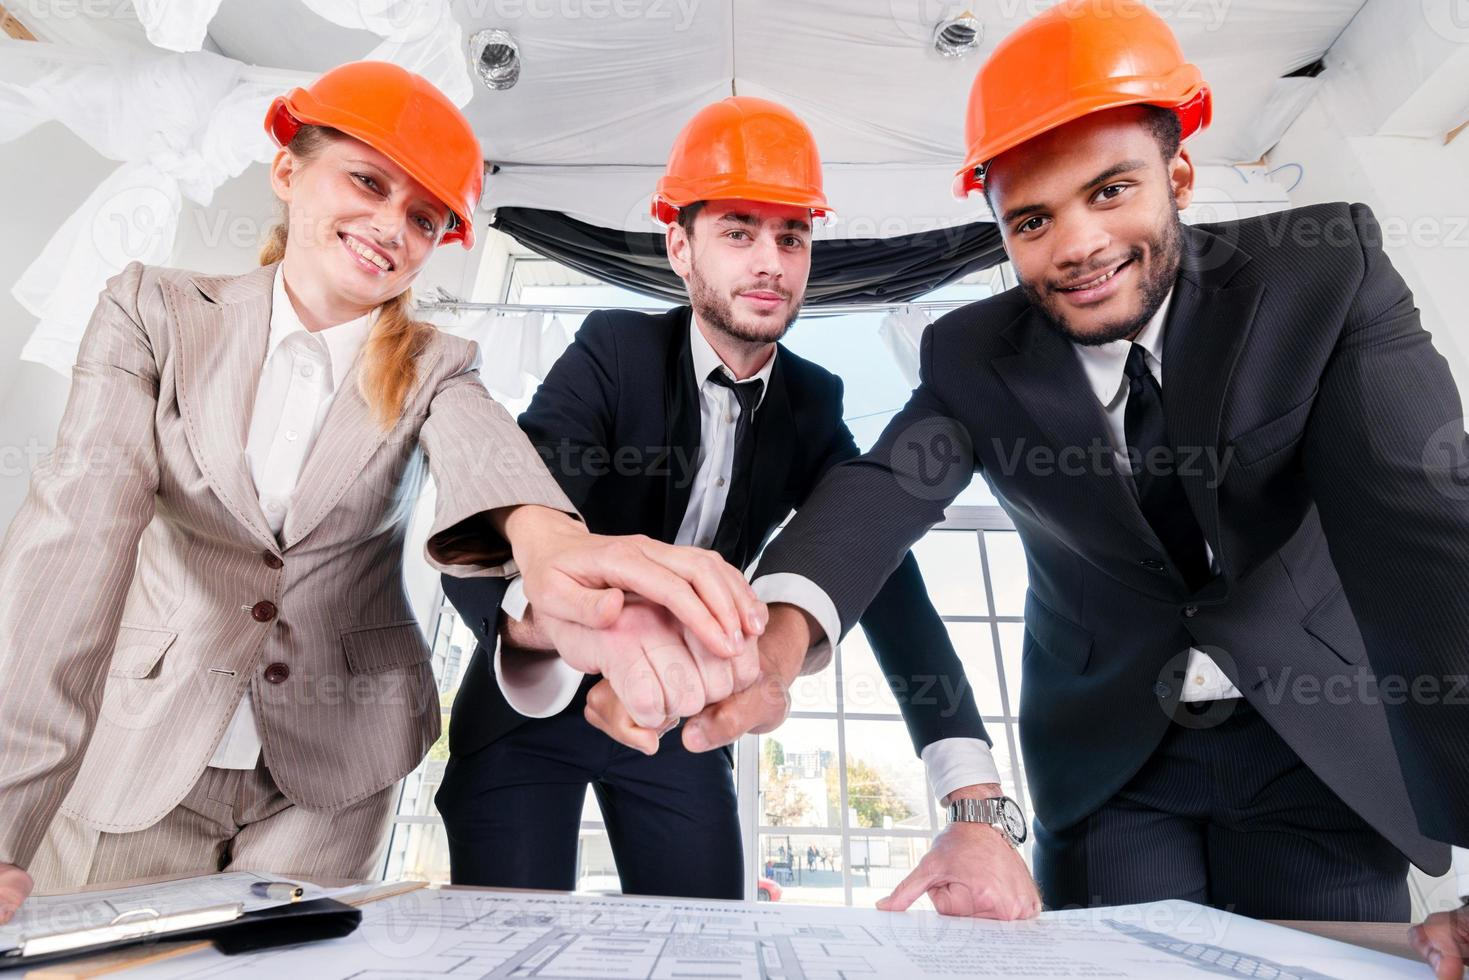 Architects laid hands on hands. Three businessmen architect met photo